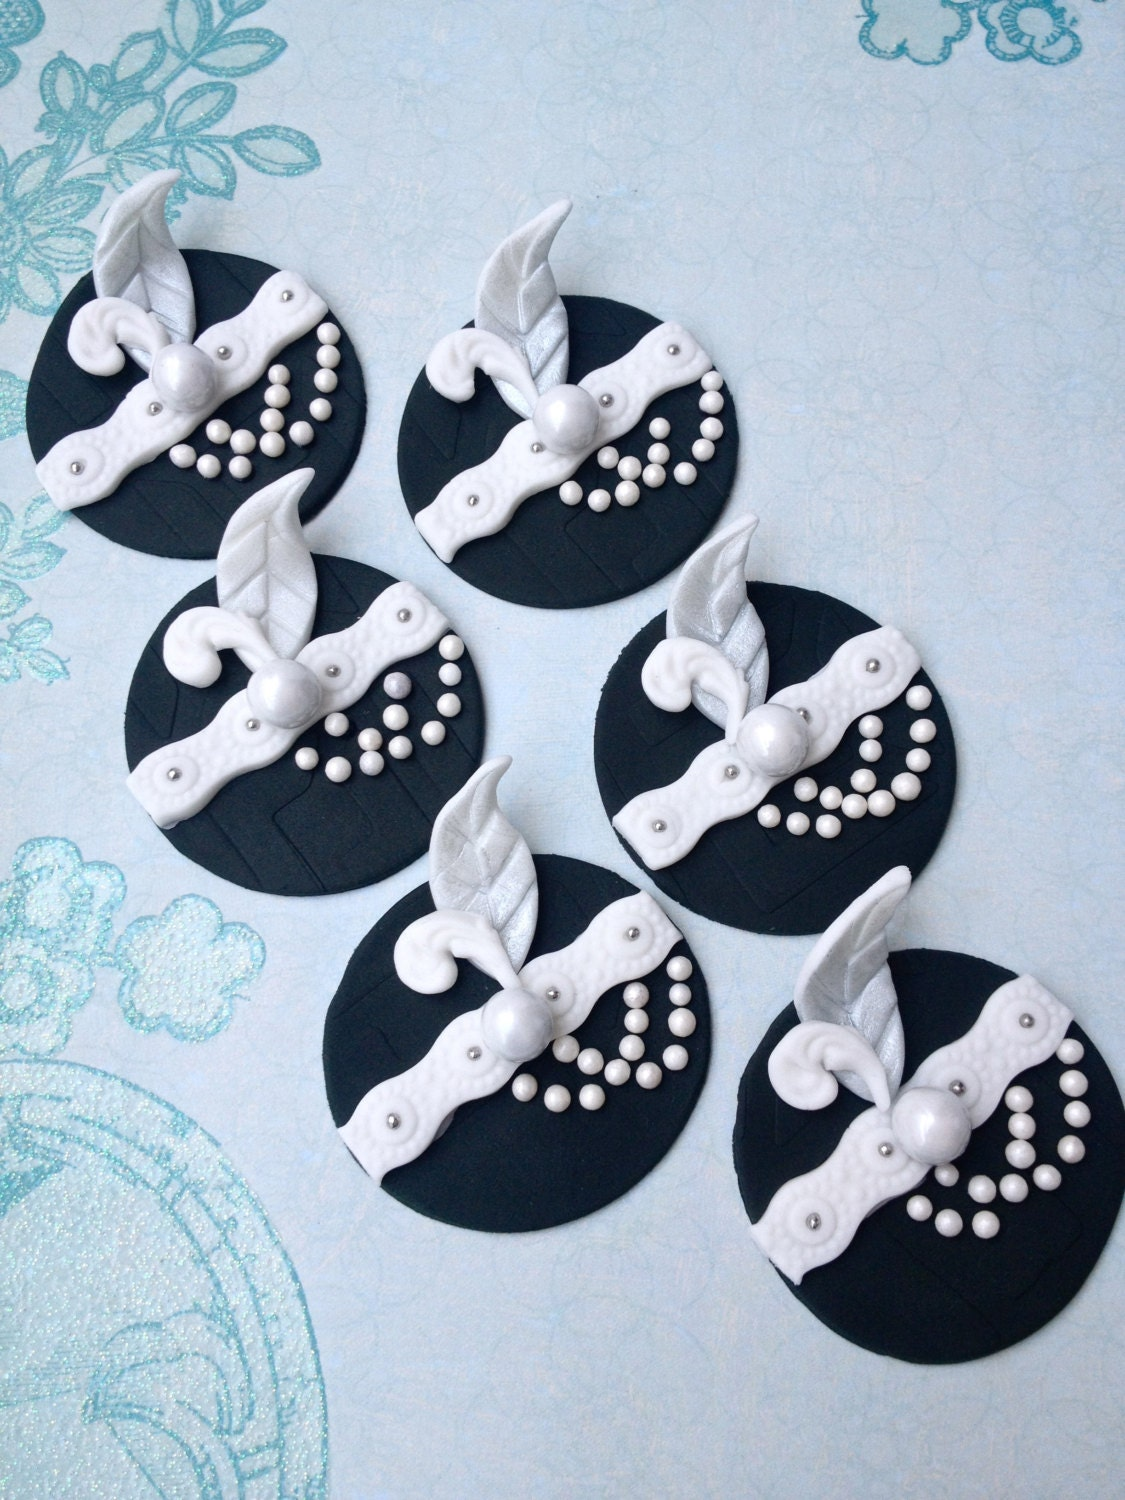 Wedding and Engagement fondant cupcake toppers made by